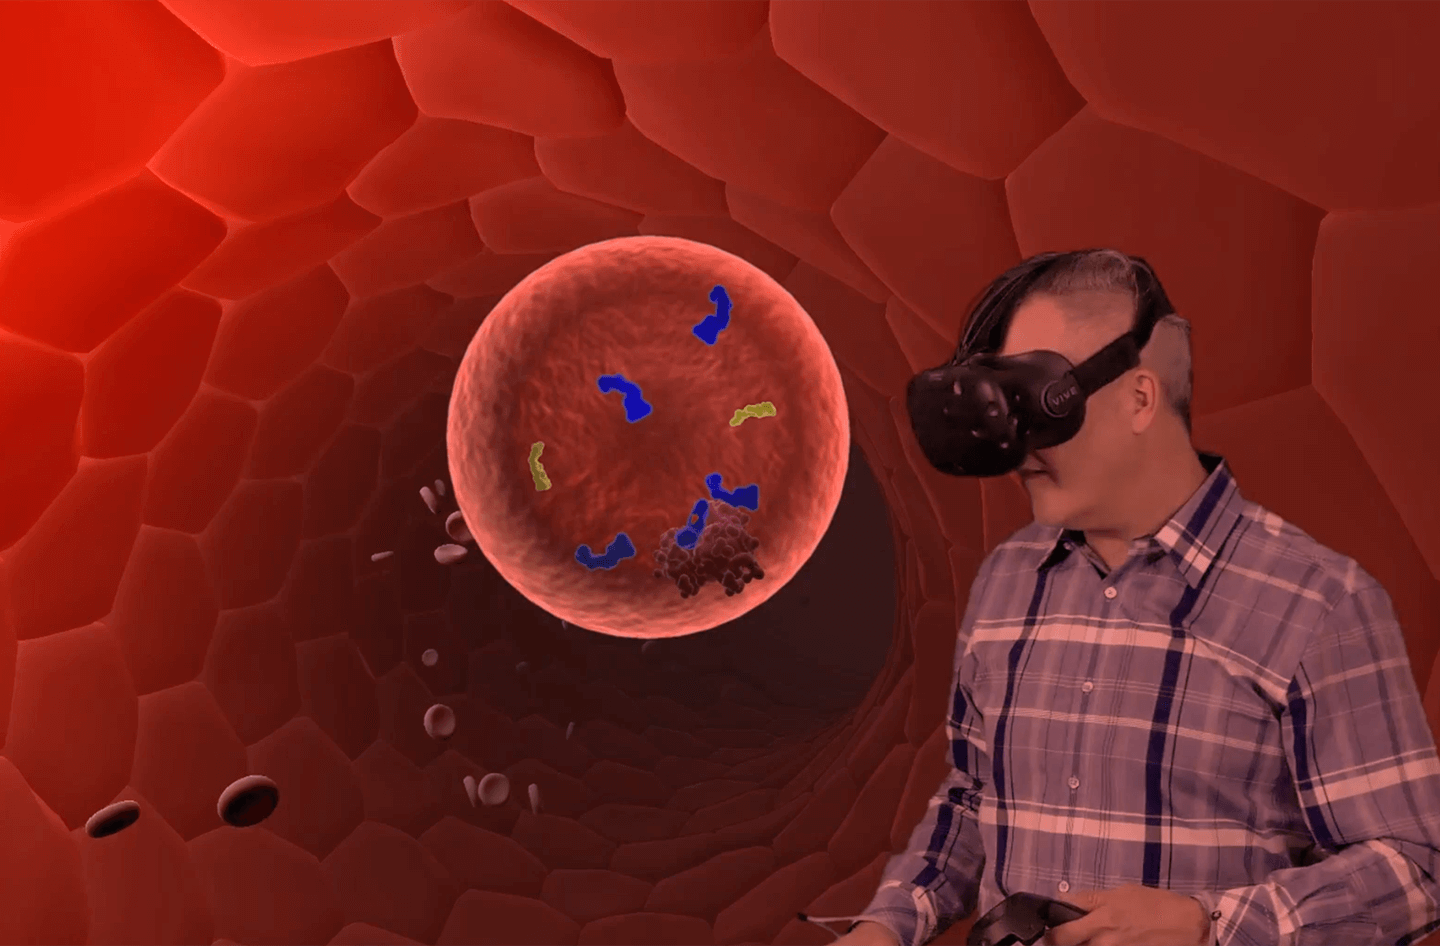 Doctor in VR learning about a medical treatment